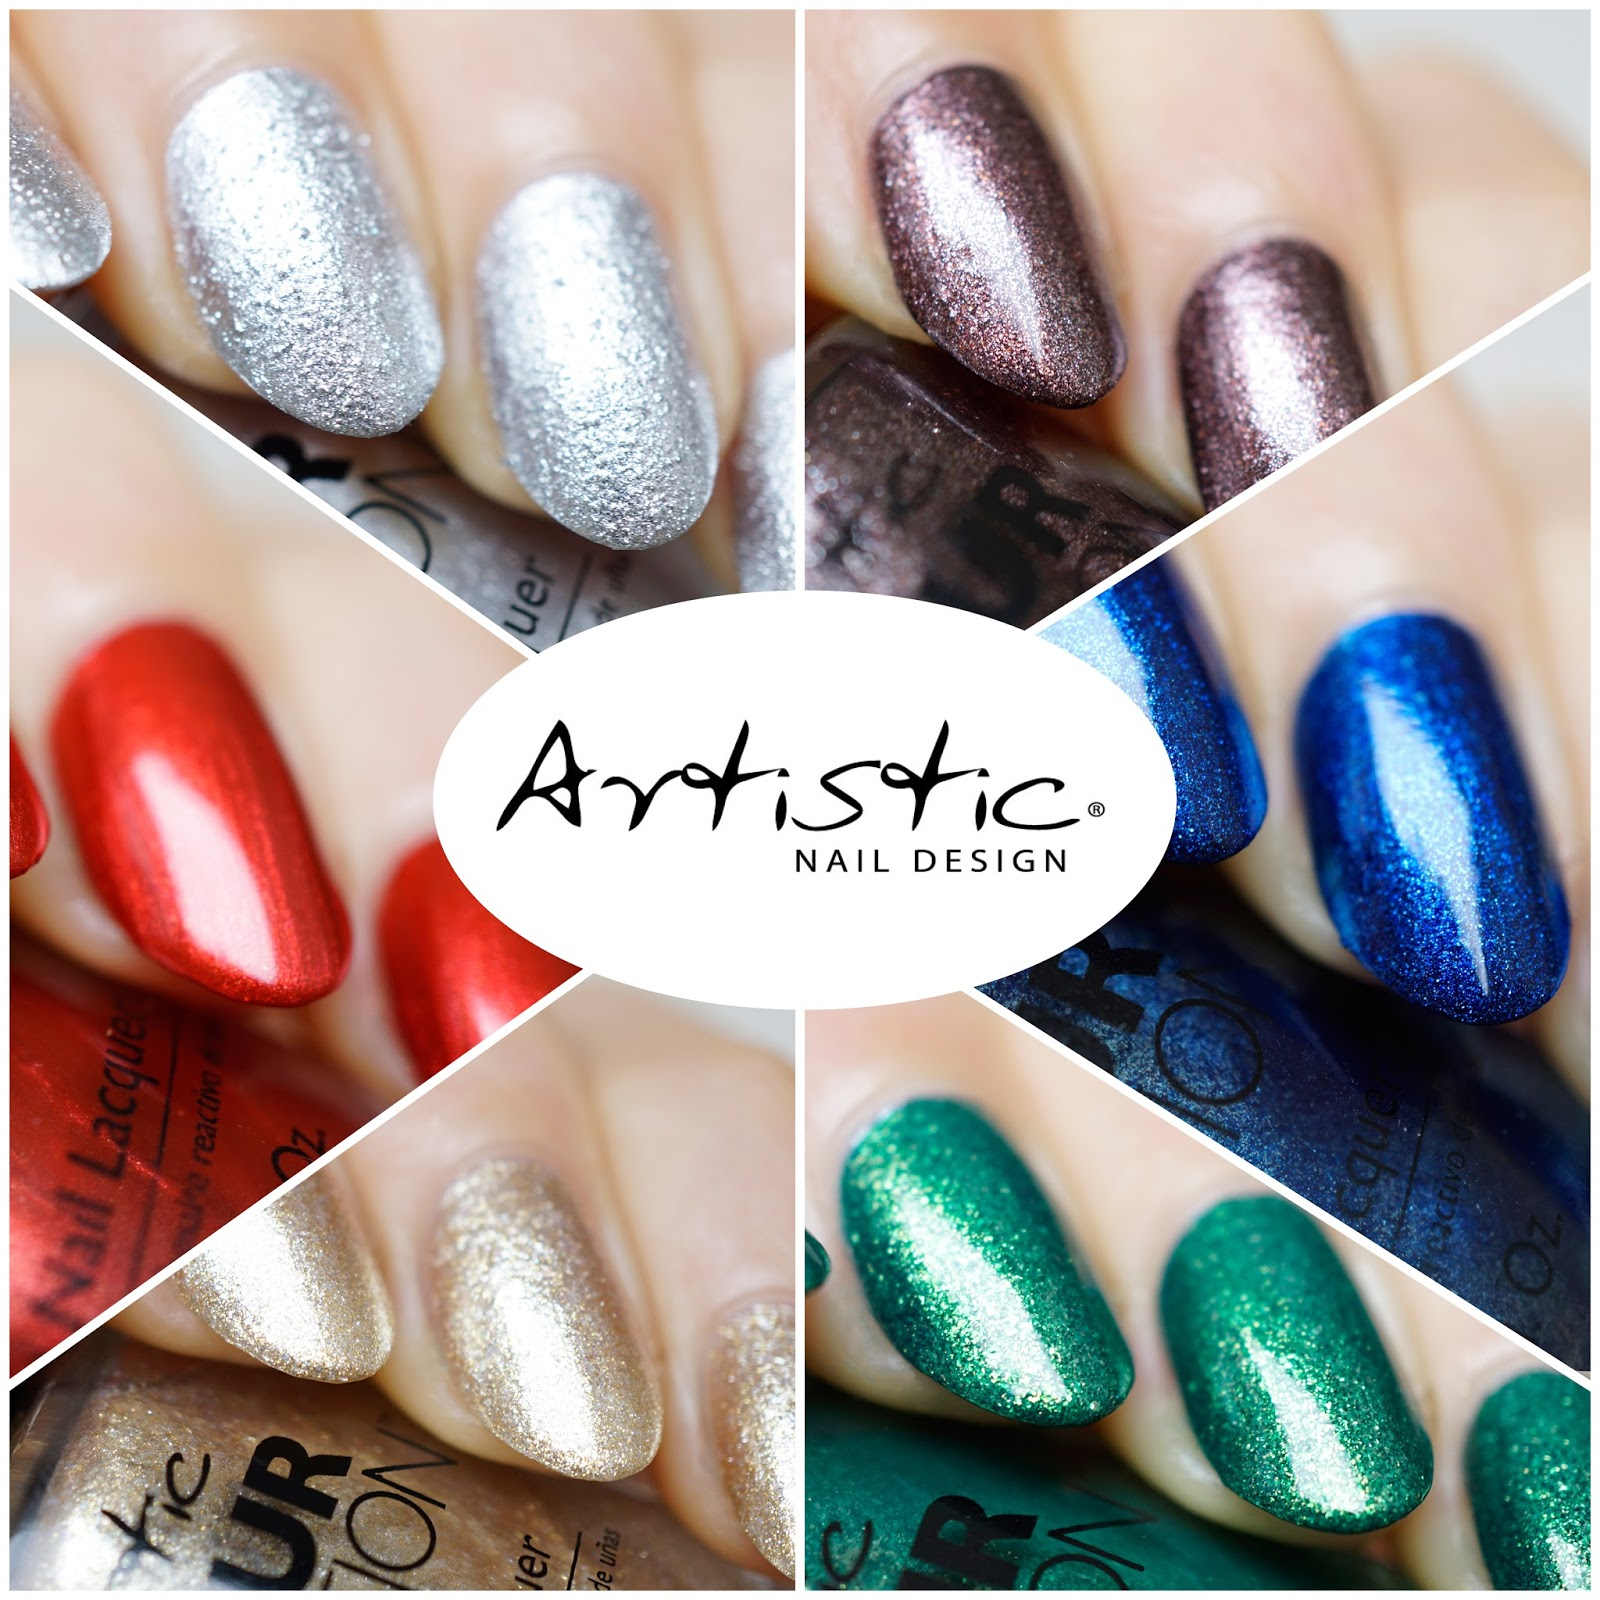 Piggieluv Artistic Nail Design Holiday Hangover Collection Swatches